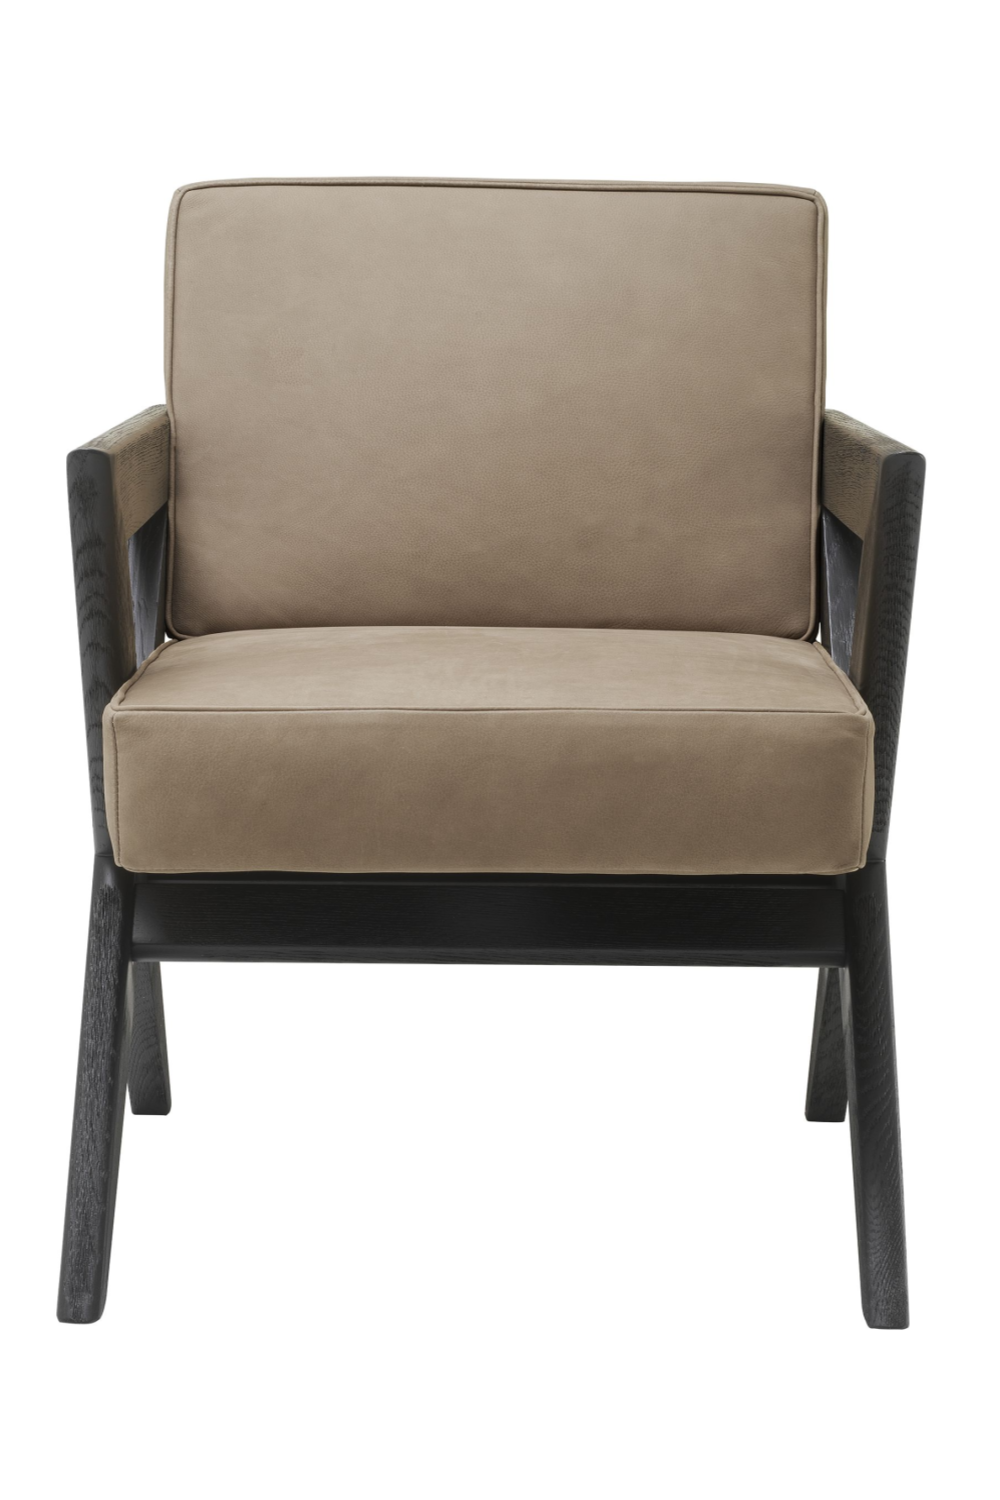 Beige Oak X-Legged Dining Chair | Eichholtz Felippe